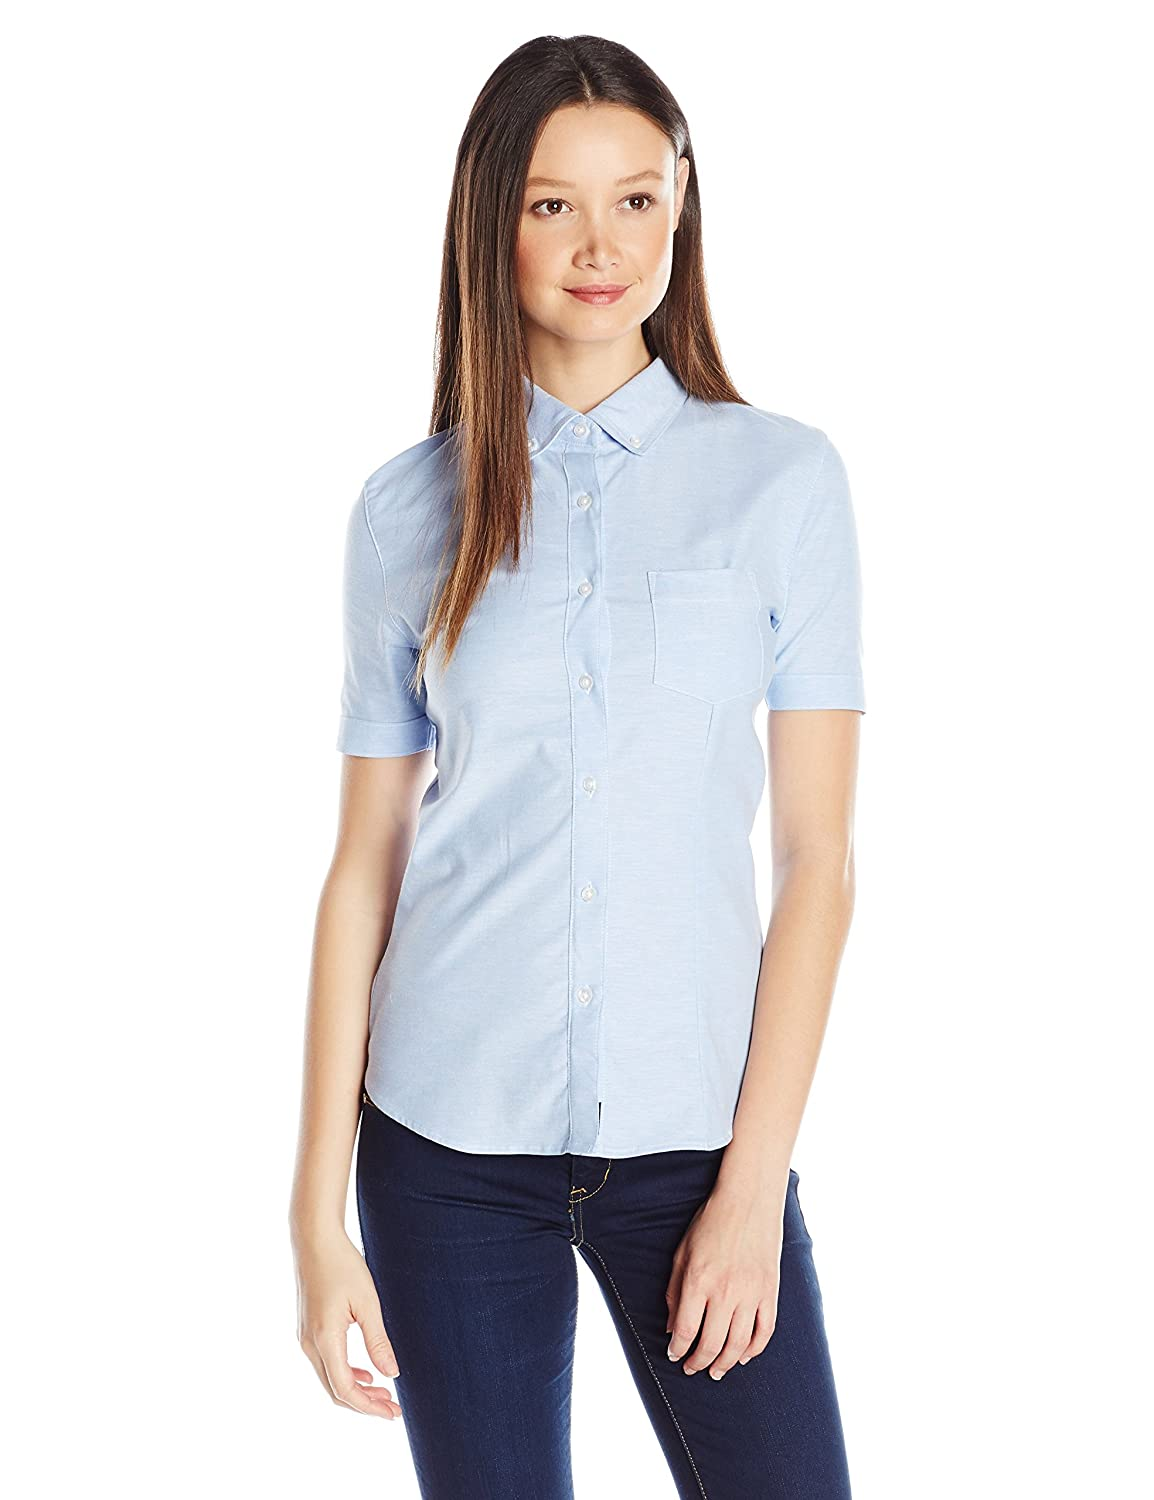 2f72eed9 Amazon.com: Lee Uniforms Junior's' Short-Sleeve Stretch Oxford Blouse: Button  Down Shirts: Clothing